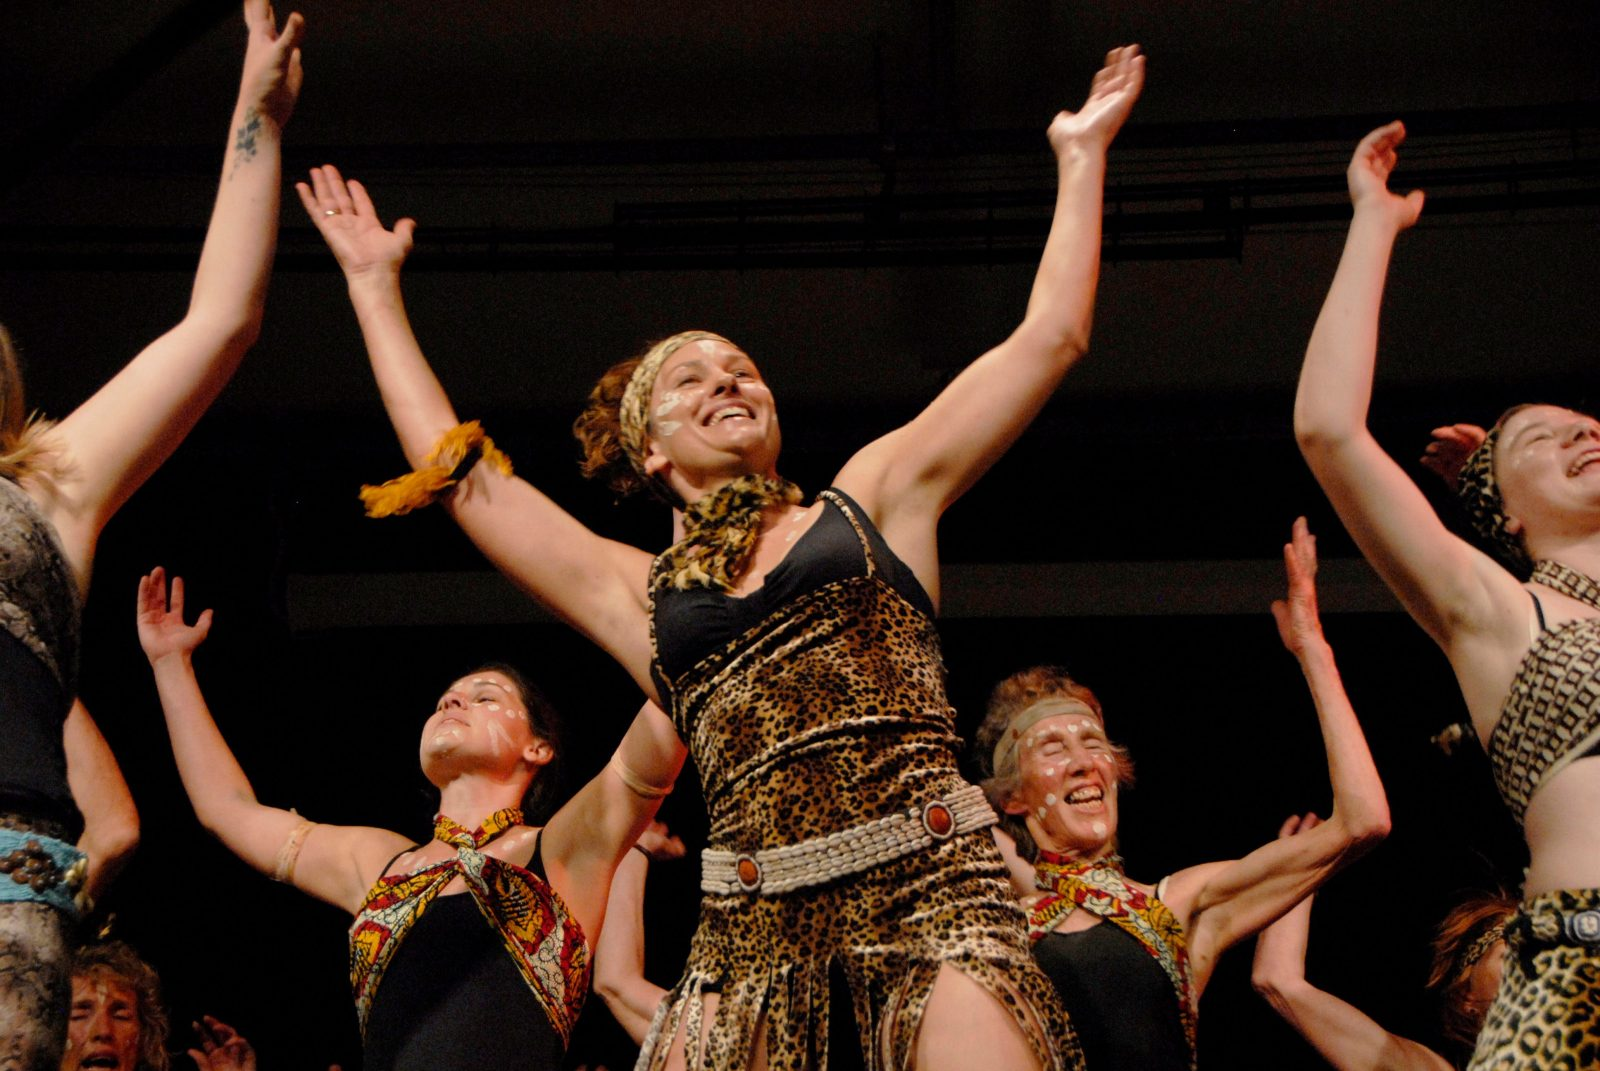 Woman upraised arms dancing in group